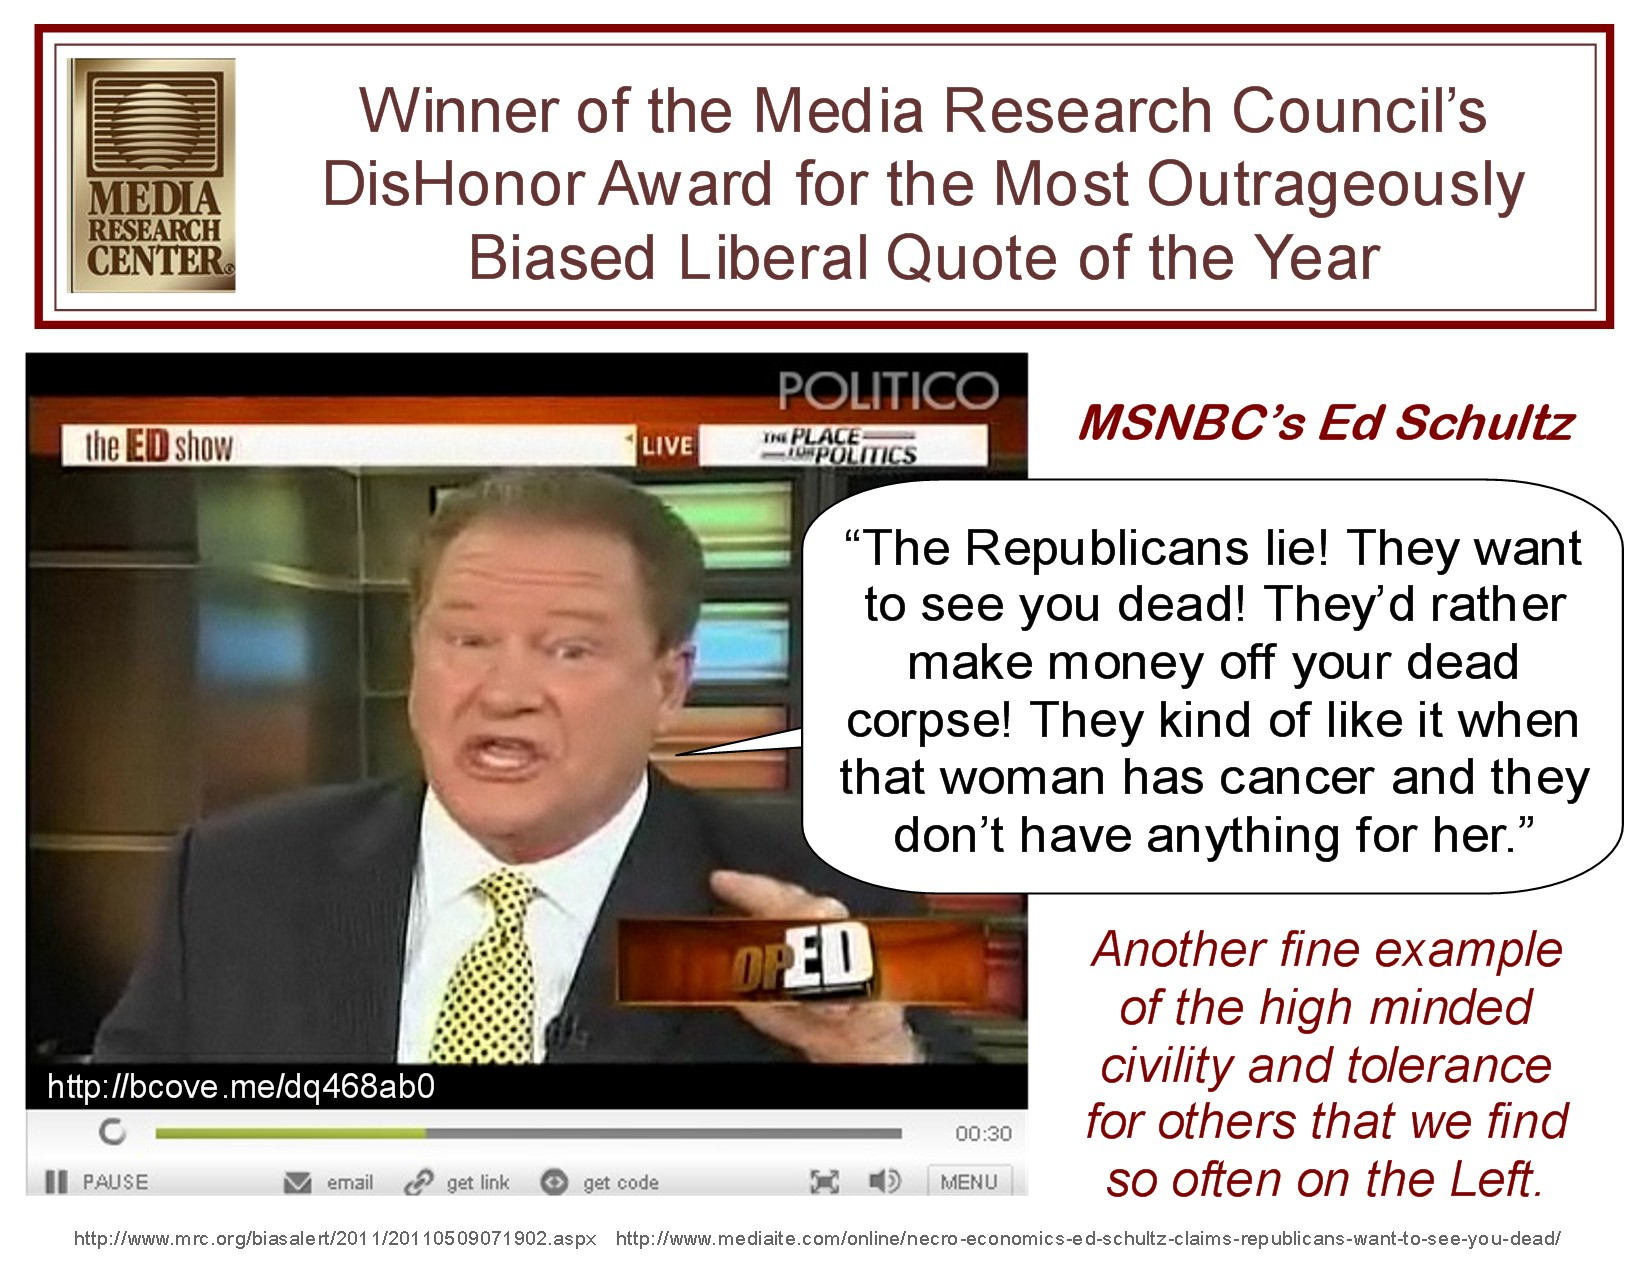 msnbcs-ed-schultz-wins-dishonor-of-the-year-award